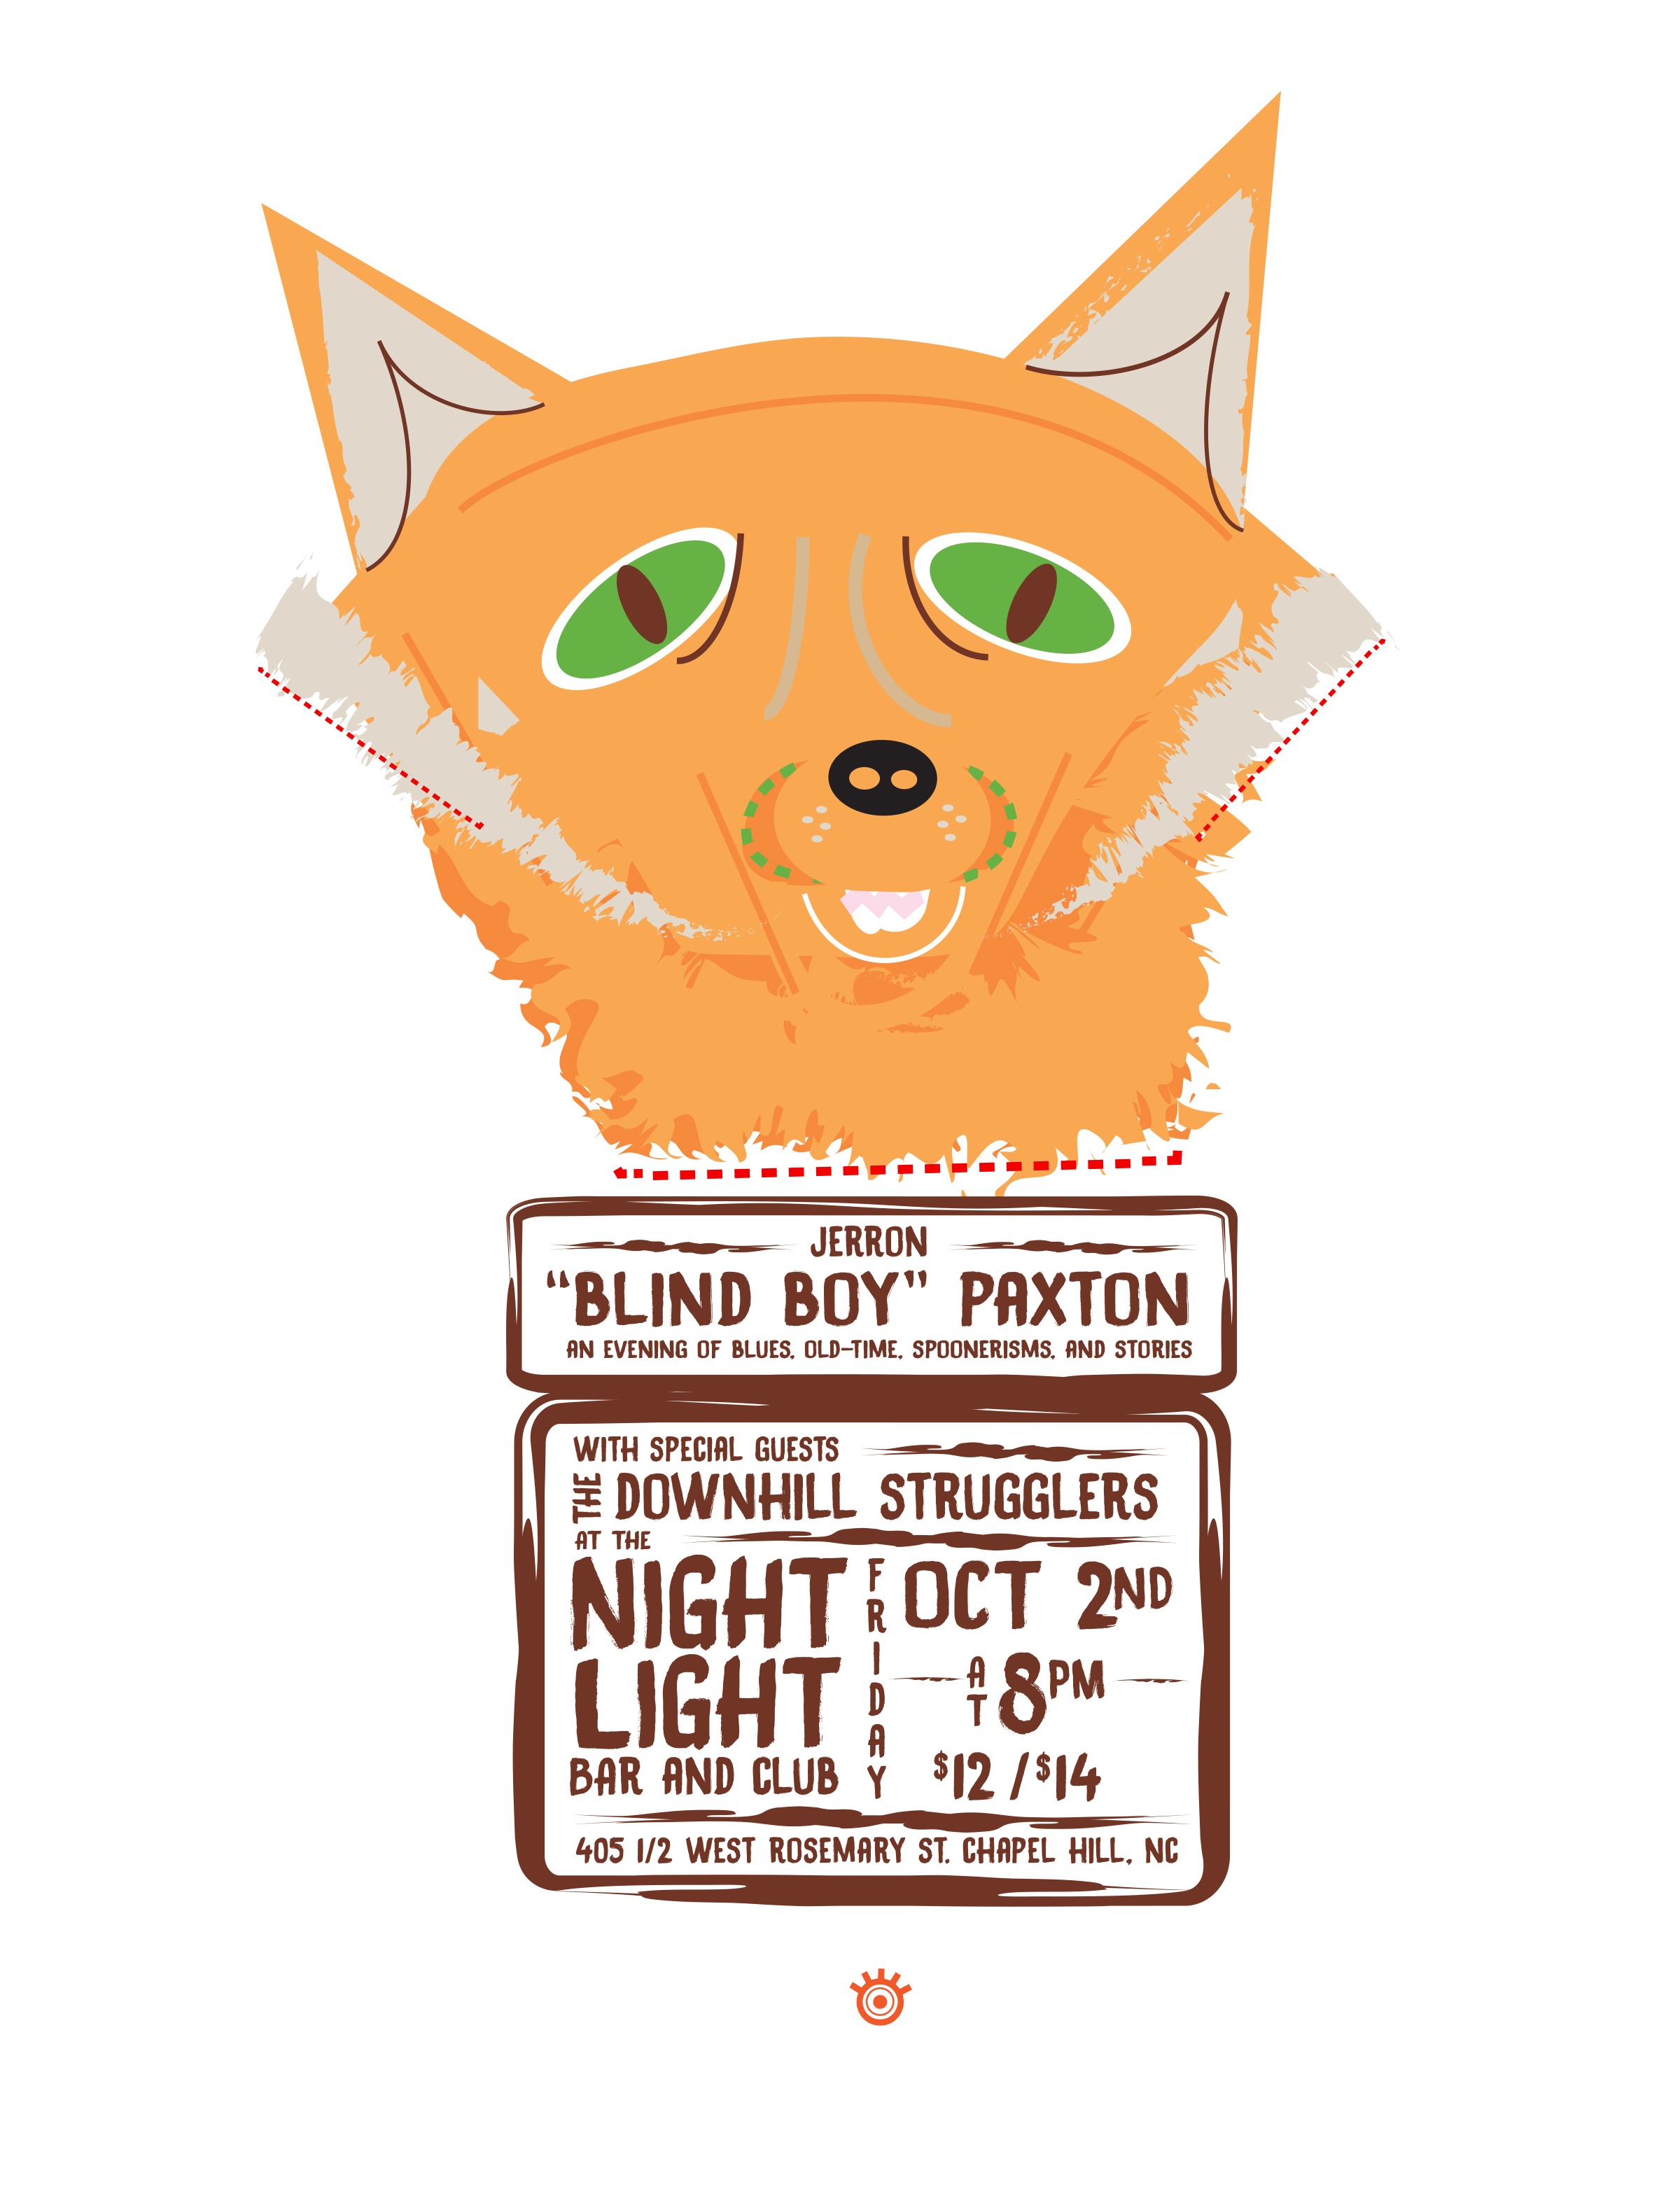 Blind Boy Paxton Poster outlines.jpg